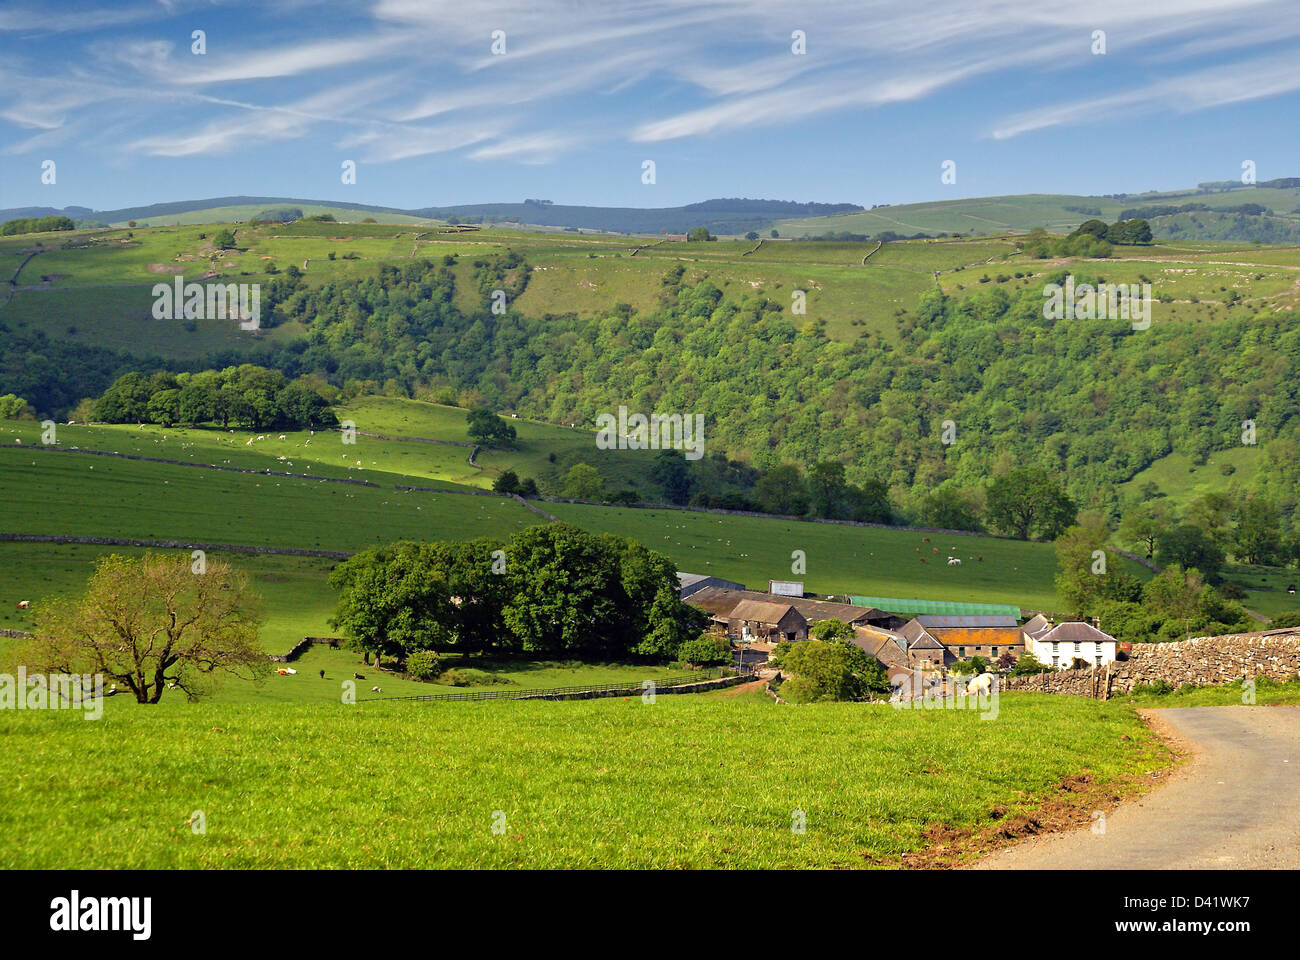 The Manifold Valley in the English Peak District. Stock Photo